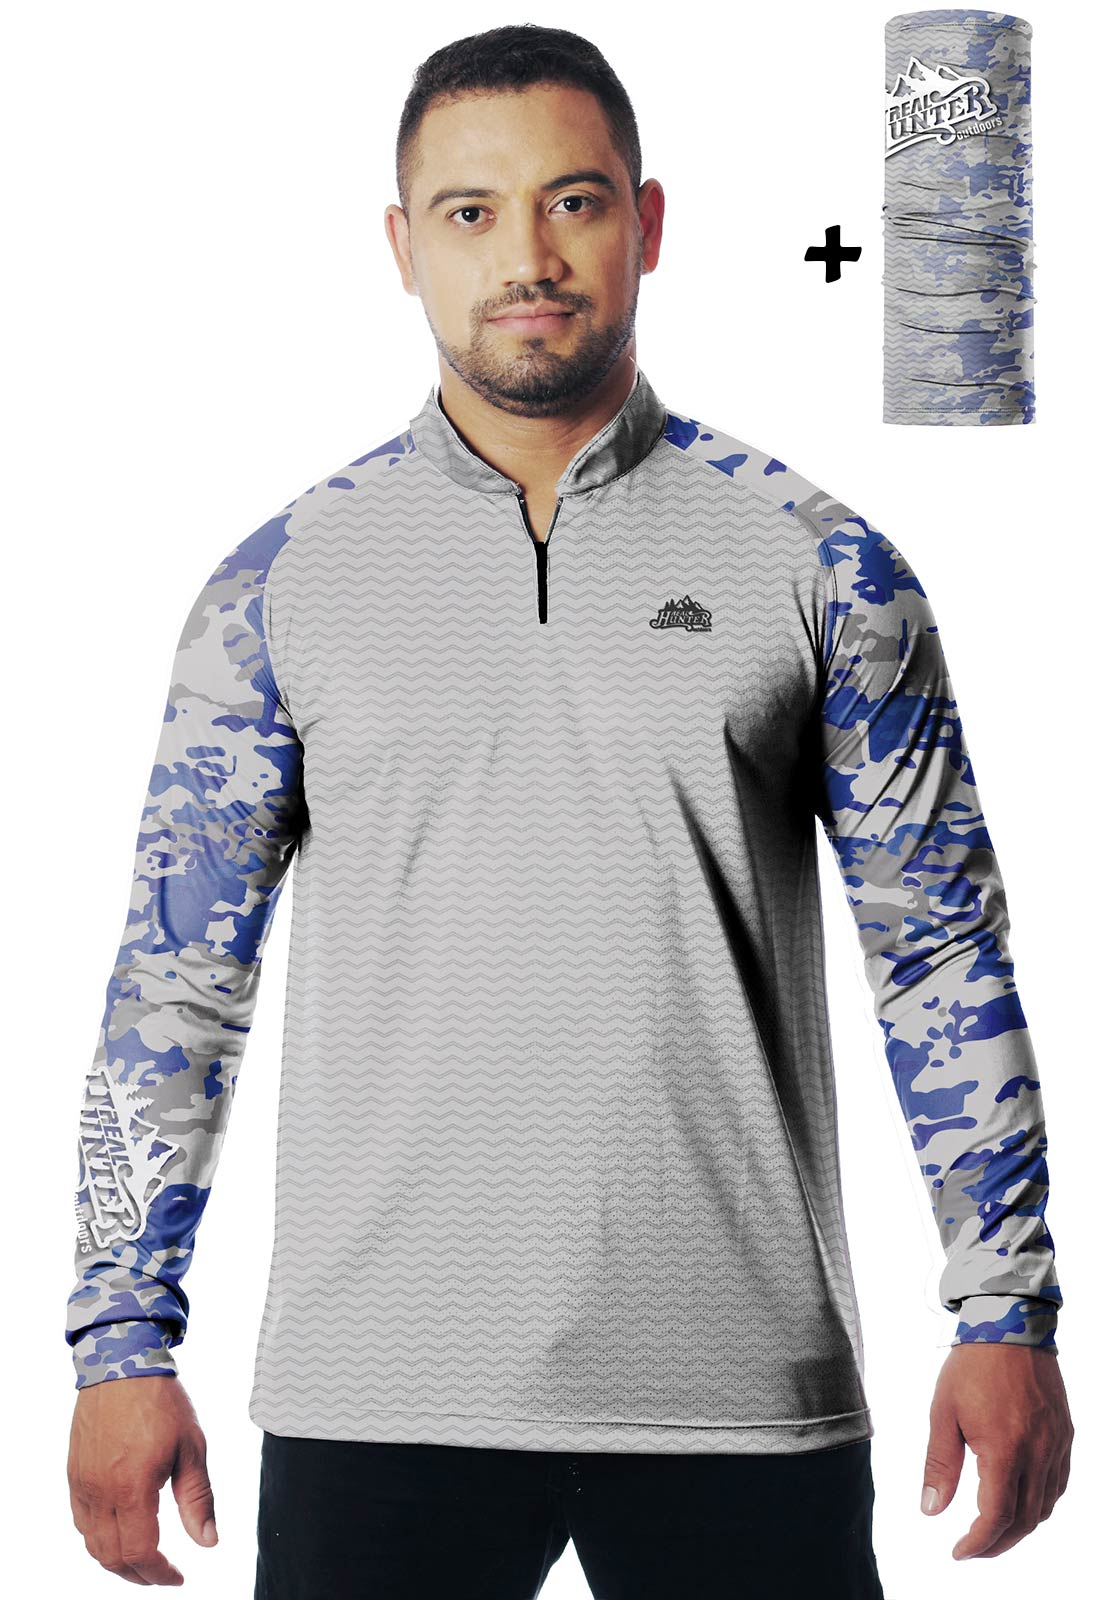 CAMISA DE PESCA FISH PRO 38 MASCULINA + BANDANA GRÁTIS  - REAL HUNTER OUTDOORS